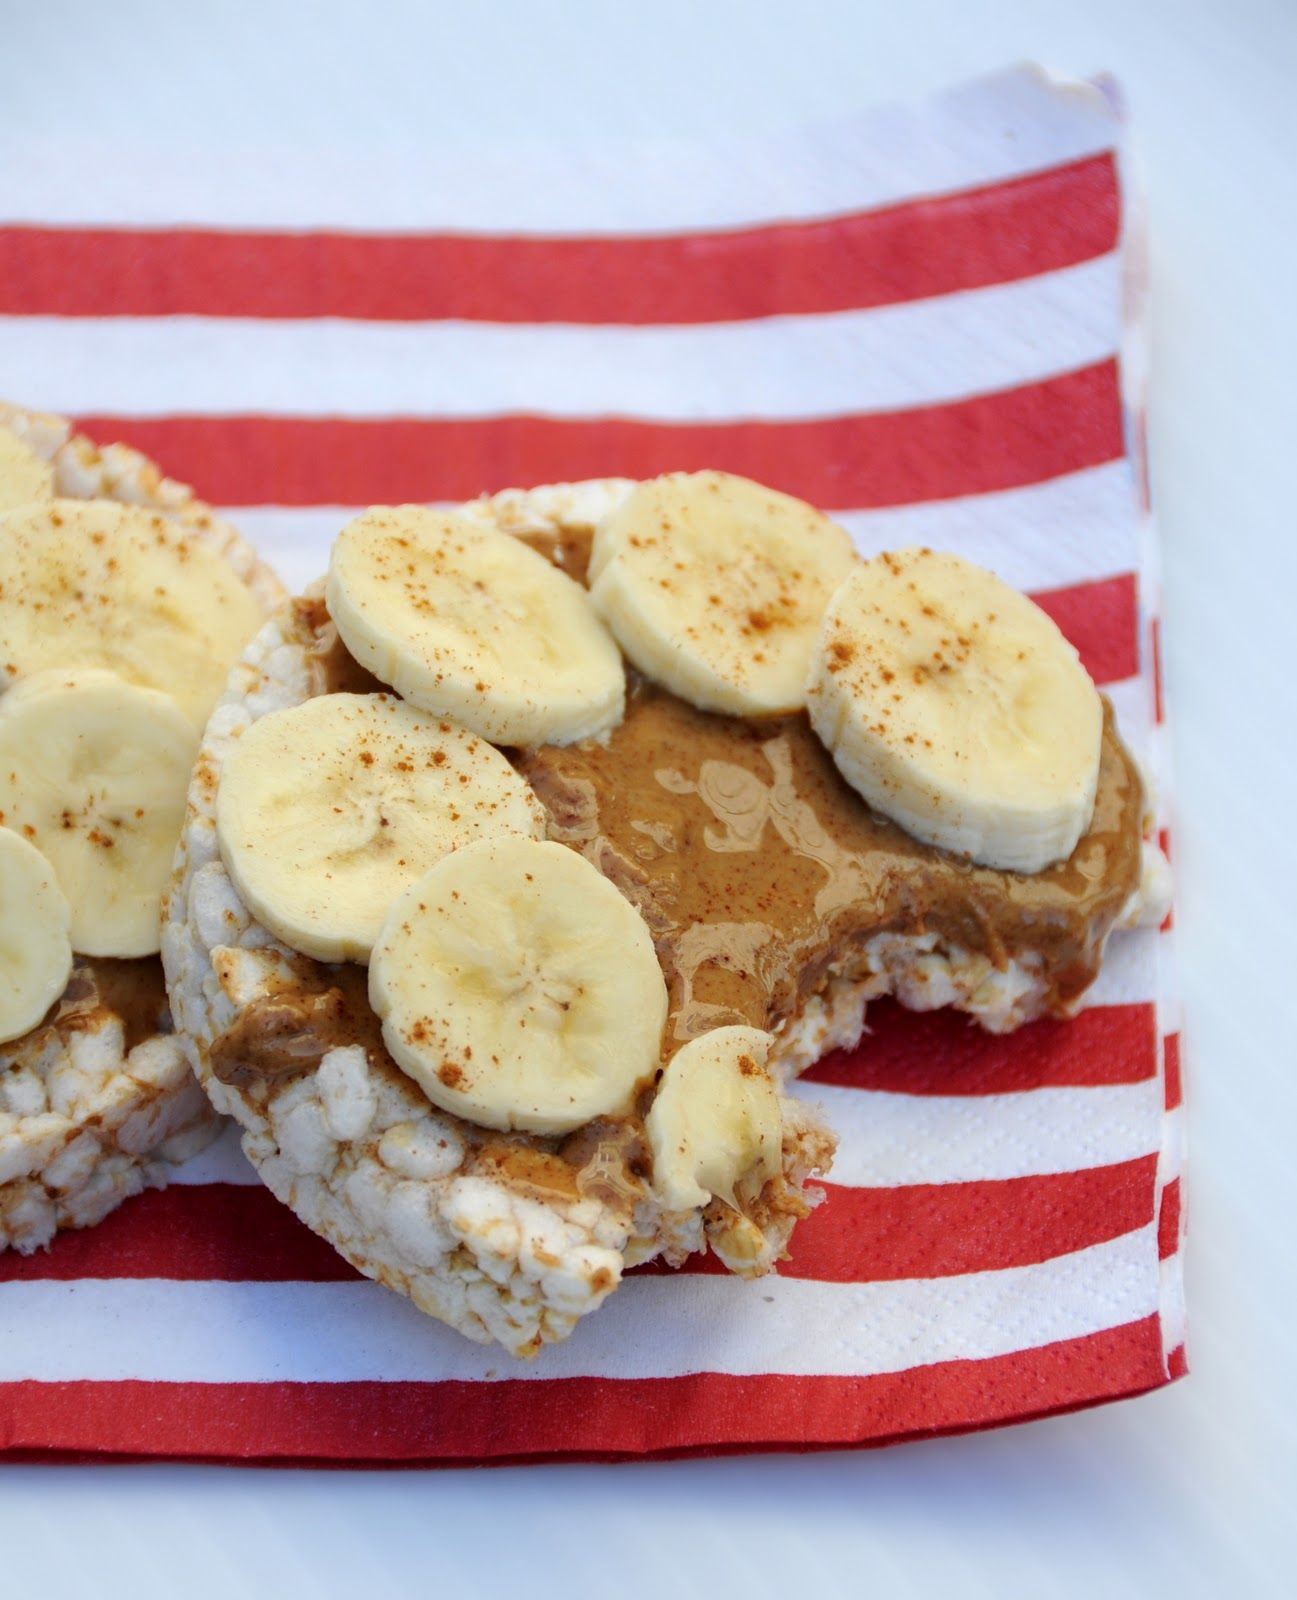 Cover rice cakes in almond butter add sliced banana and